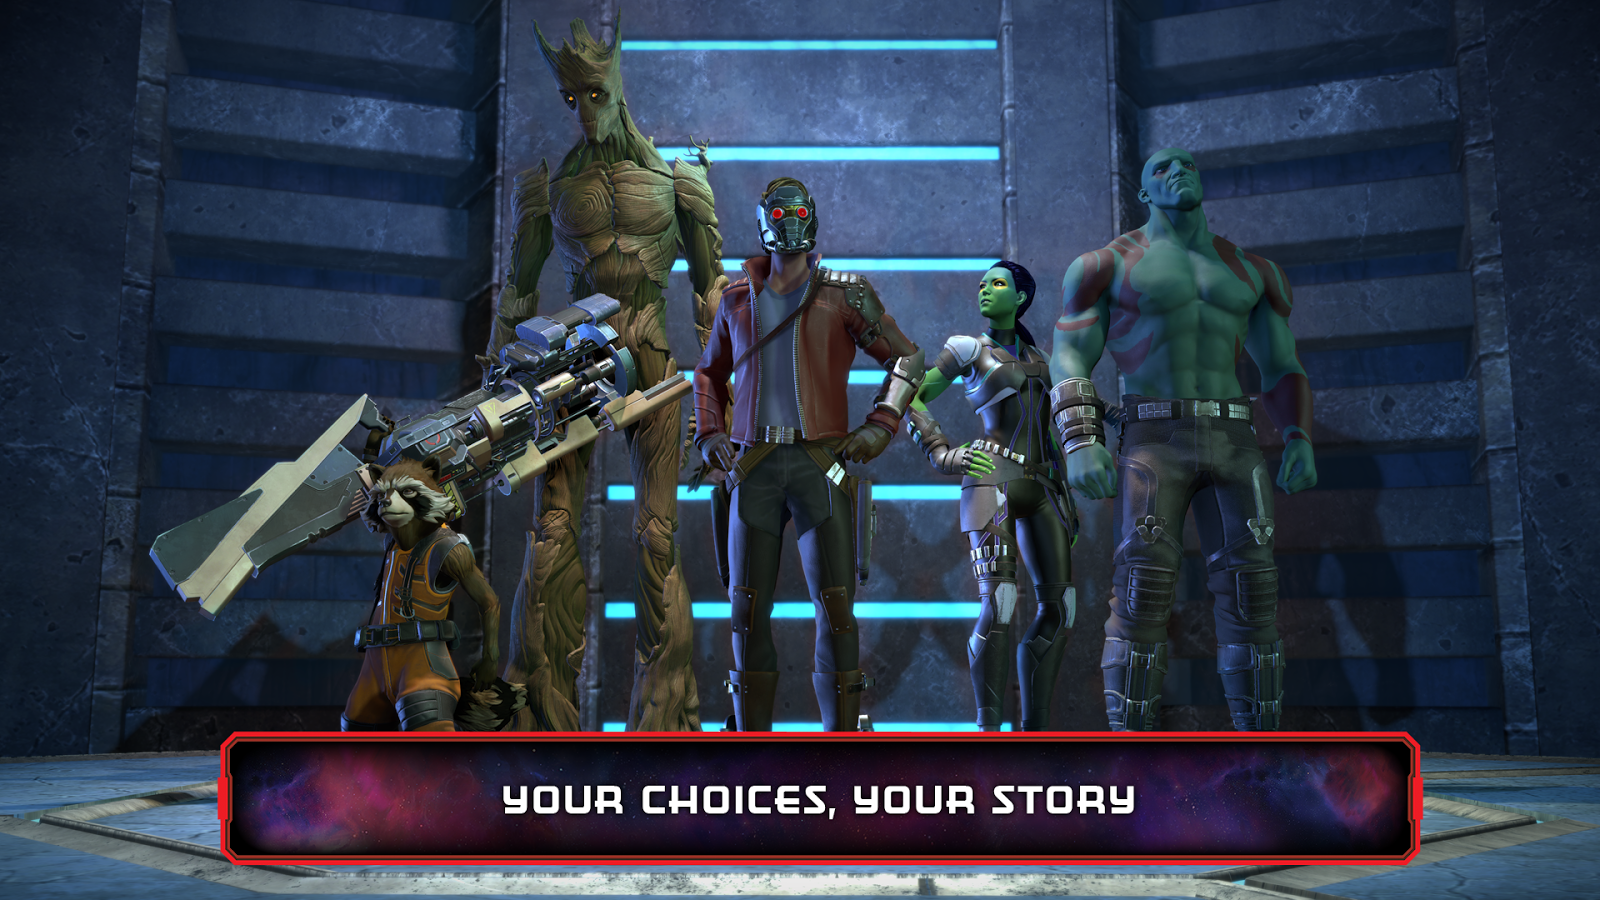 Marvel's Guardians of the Galaxy: The Telltale Series - Episode 1-5 (RUS|ENG|MULTI9) [REPACK]